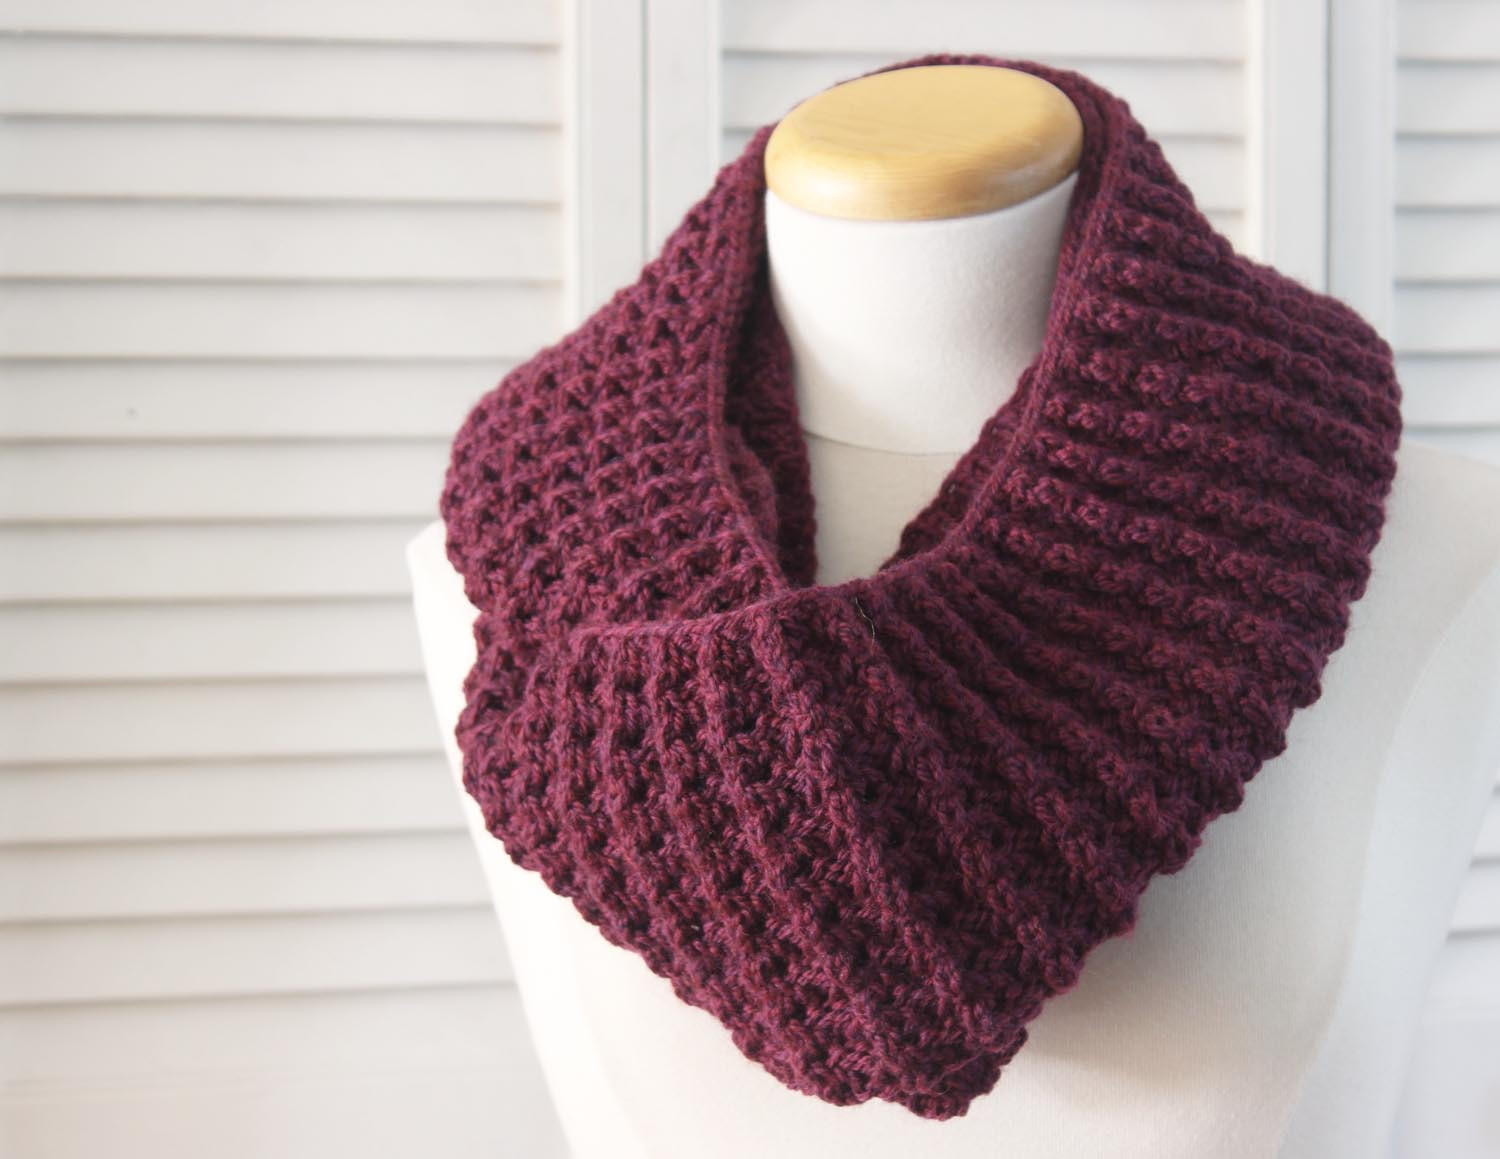 Infinity Scarf Knitting Pattern Inspirational the Infinity Puffy Scarf Of New 43 Images Infinity Scarf Knitting Pattern